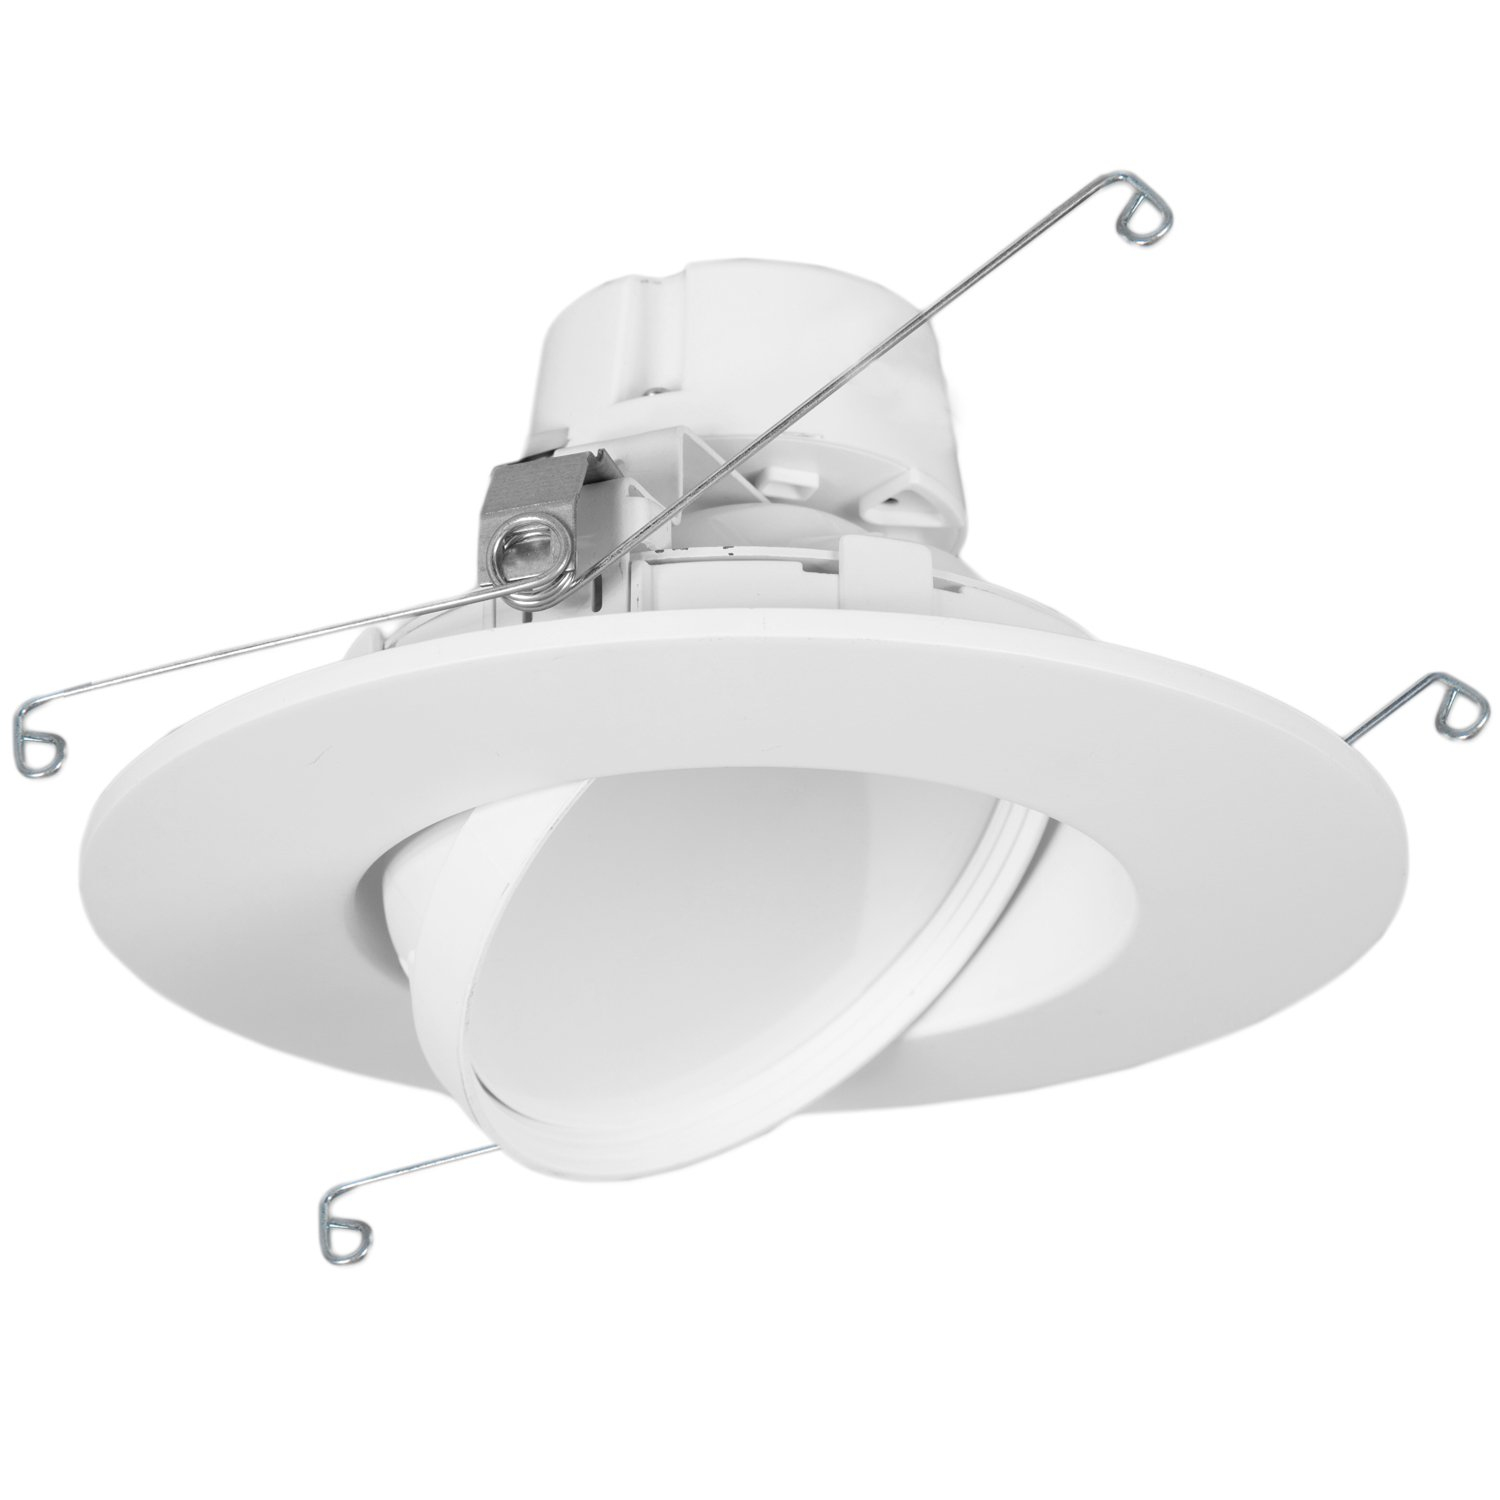 11 Watt 6''-Inch Rotatable 750 Lumens Maxxima LED Retrofit Downlight Gimbal Warm White 2700k Dimmable, Straight E26 Connection Cable, Energy Star